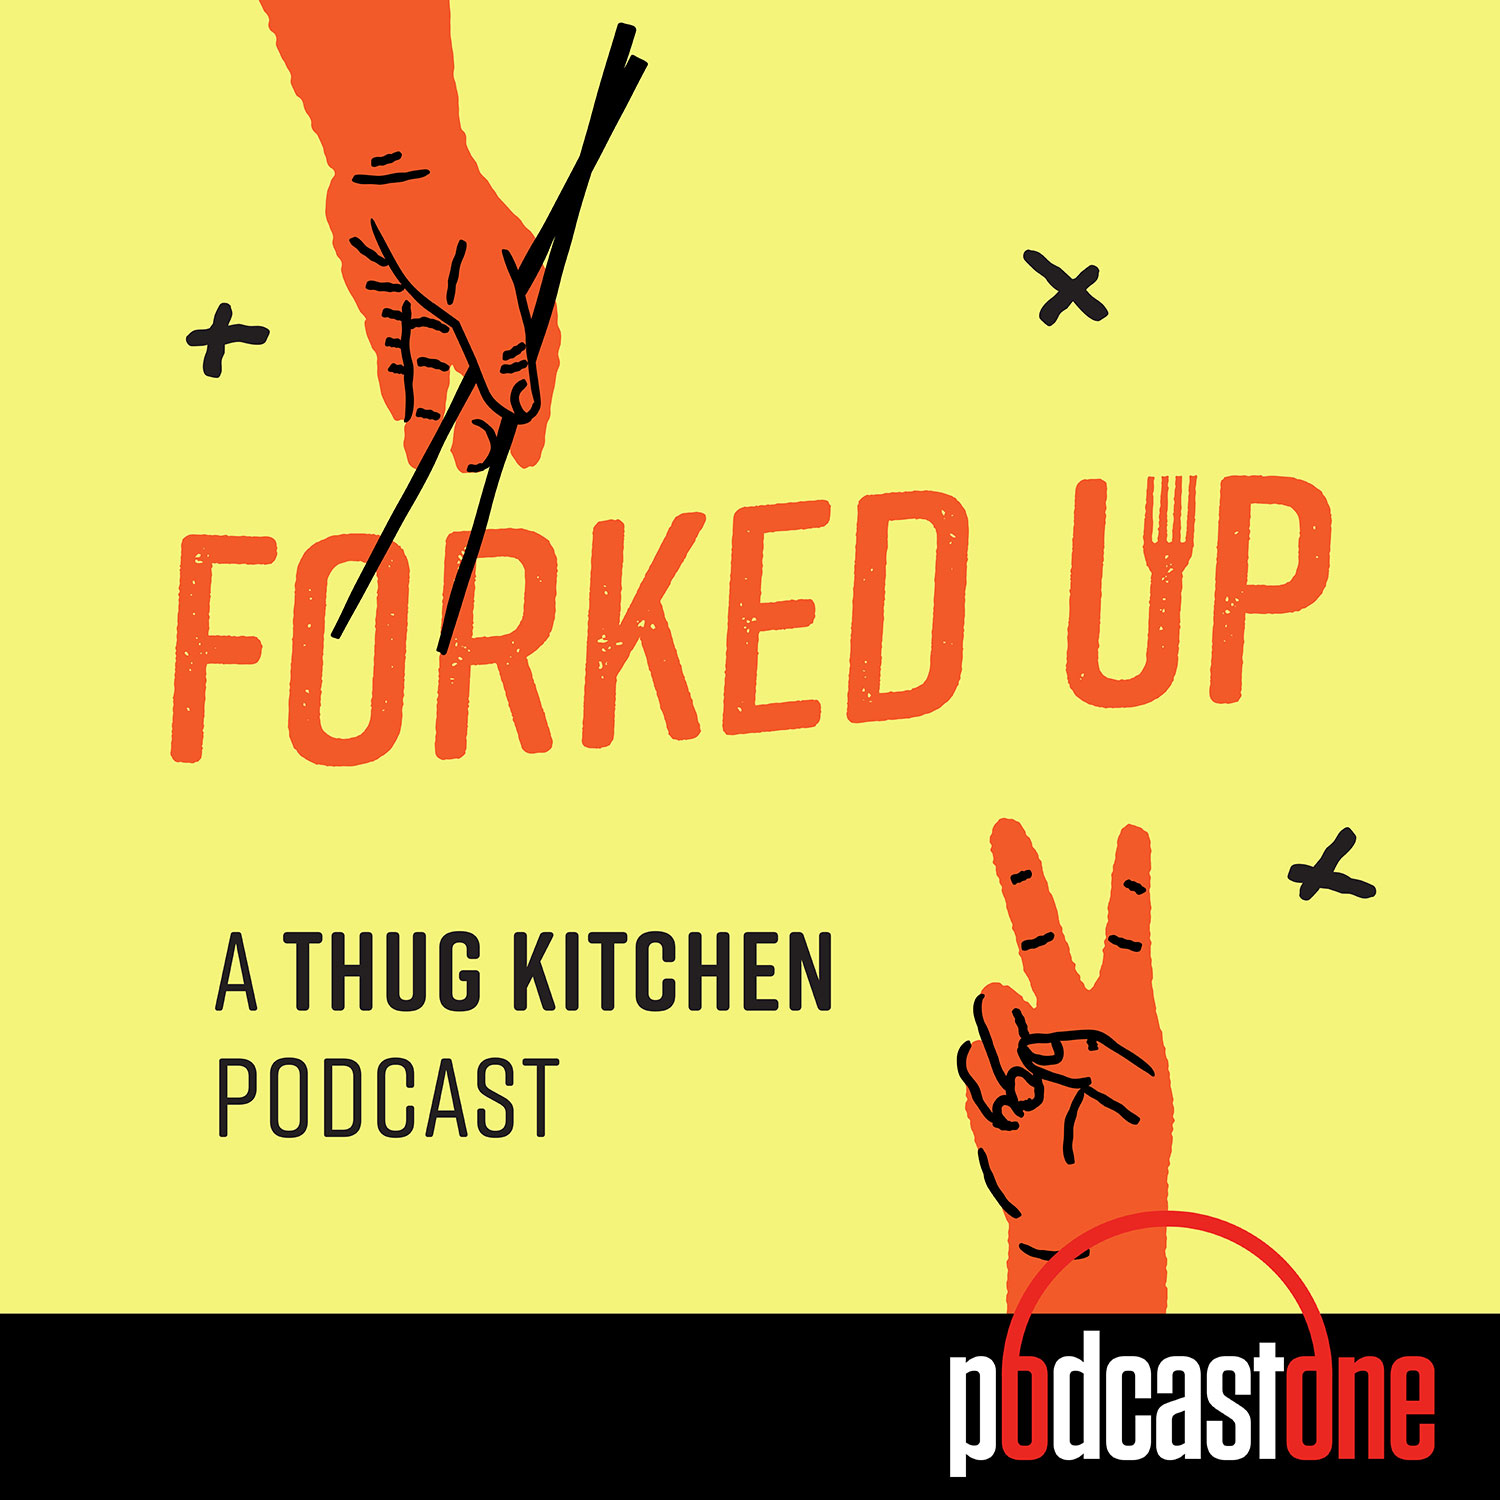 Jill Replogle Forked Up: A Thug Kitchen podcast on